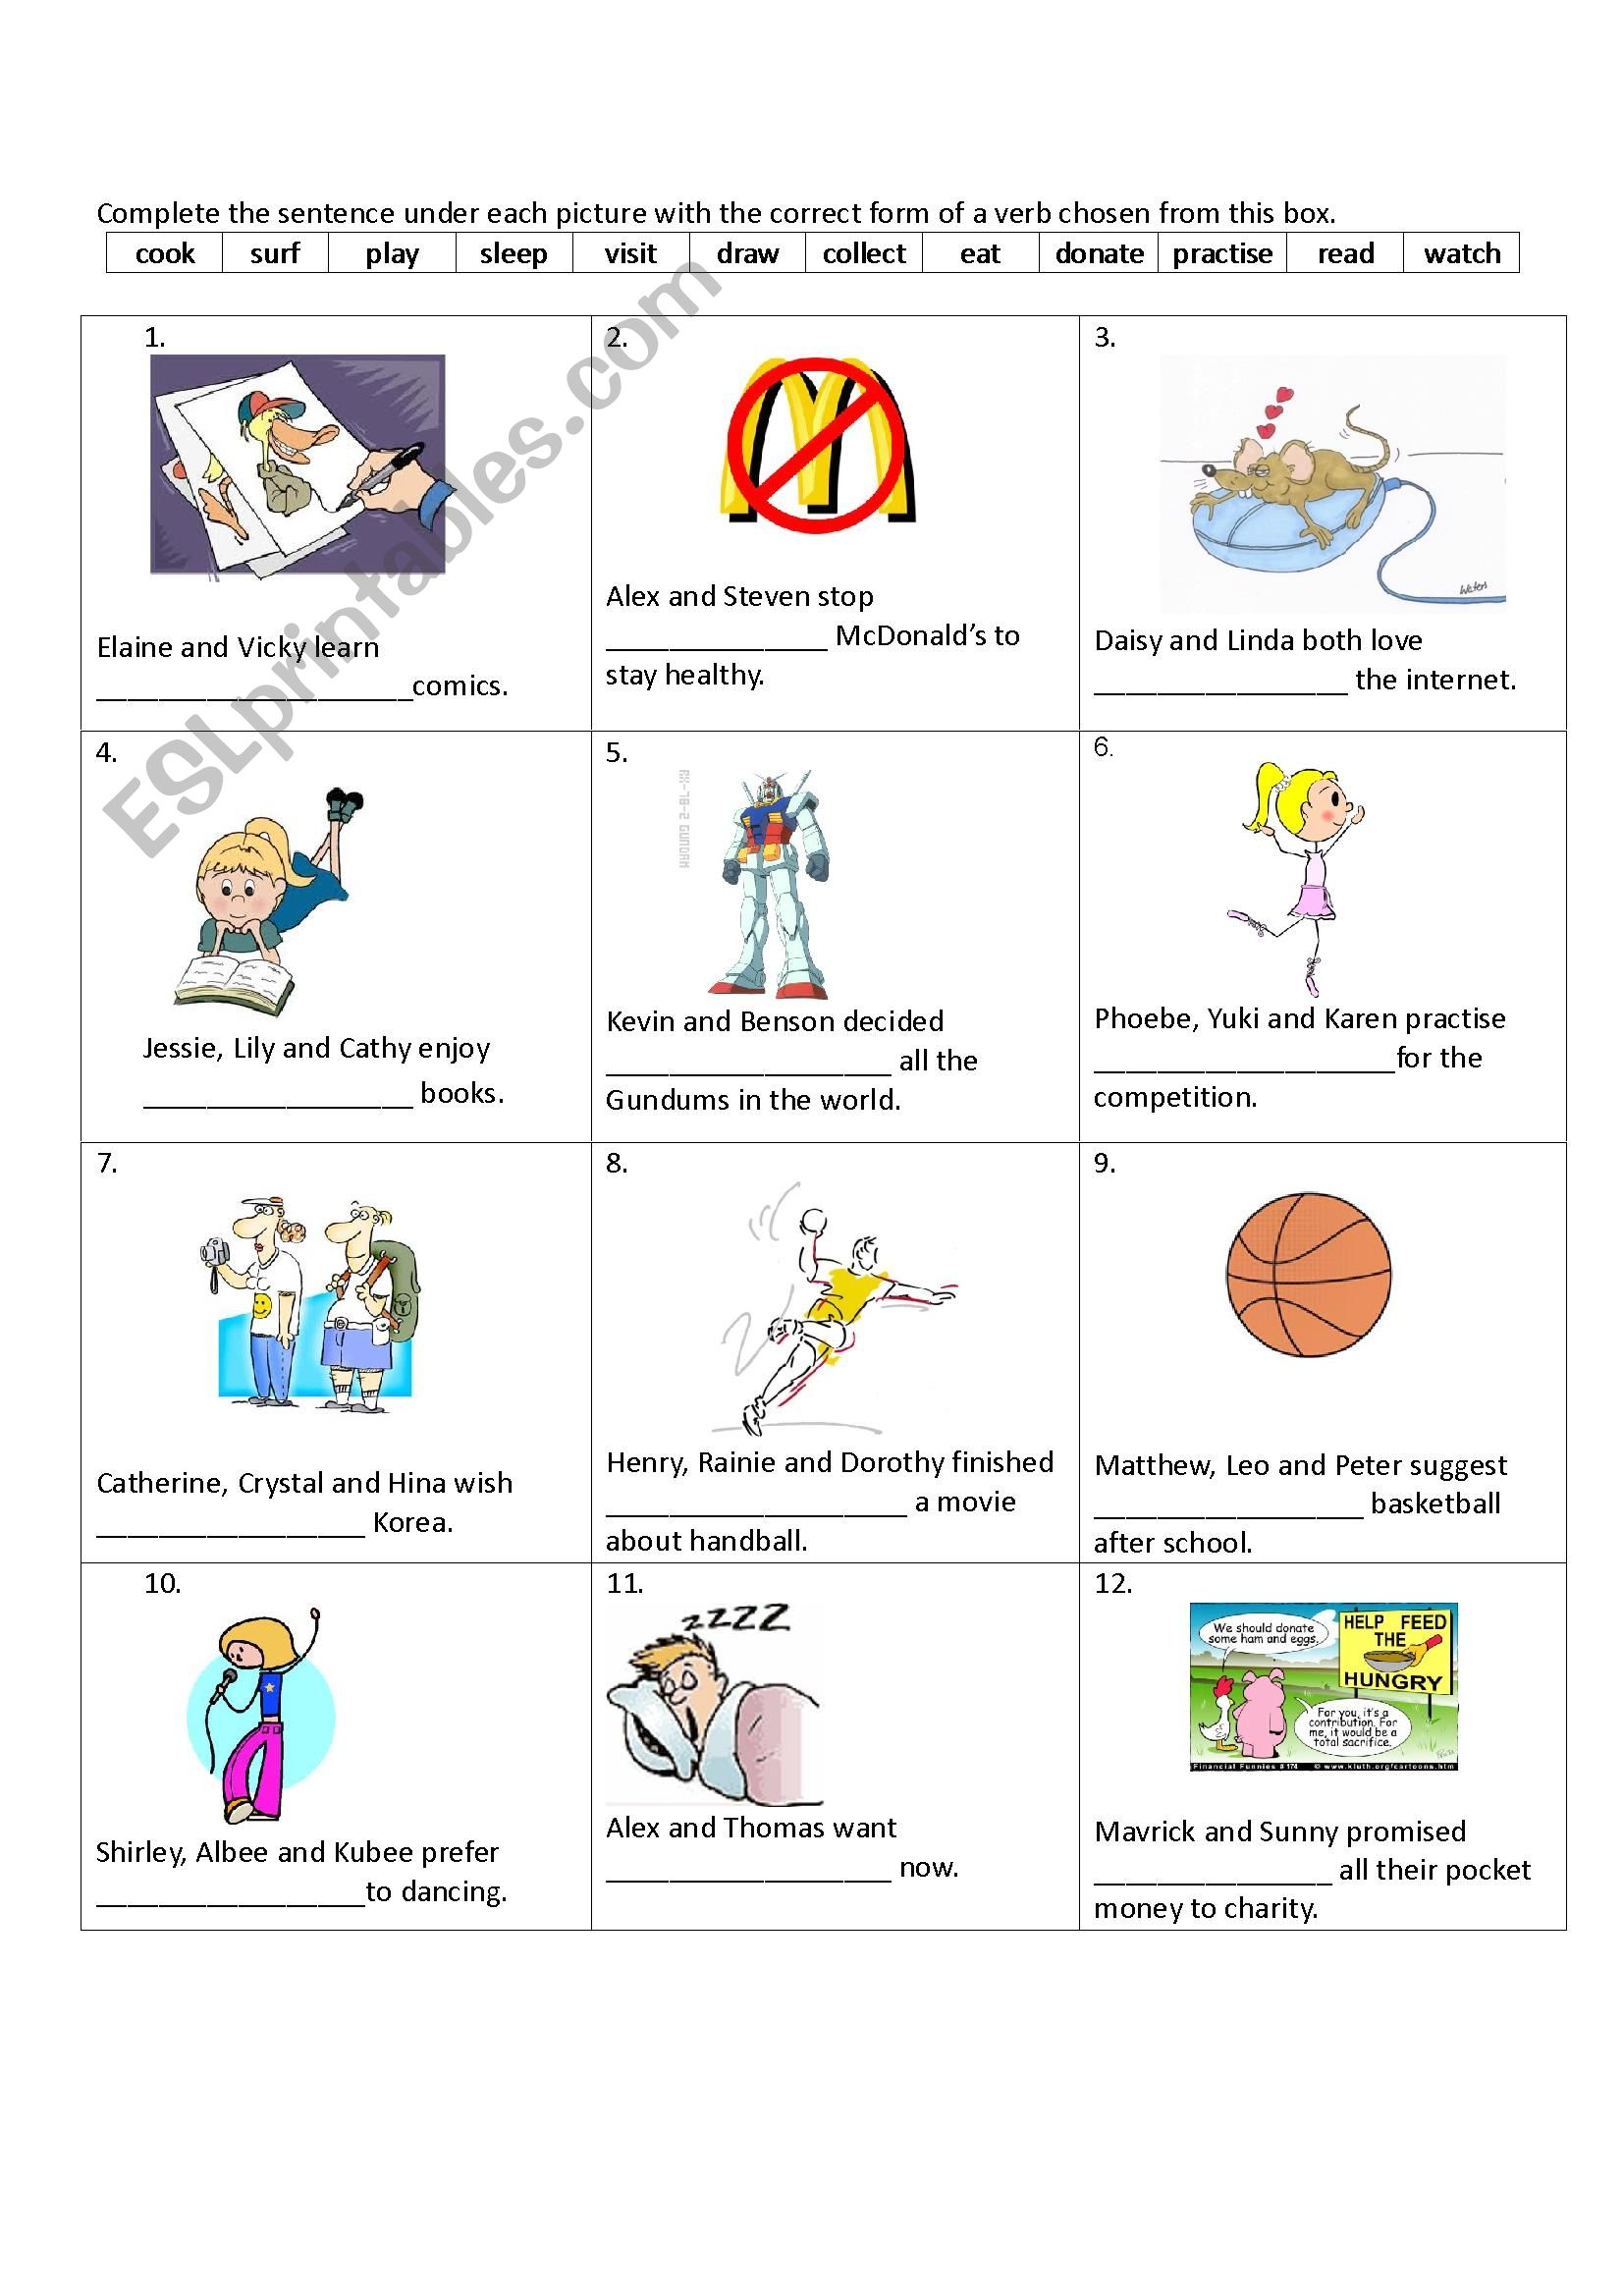 Verbs Followed By Gerund And To Infinitive